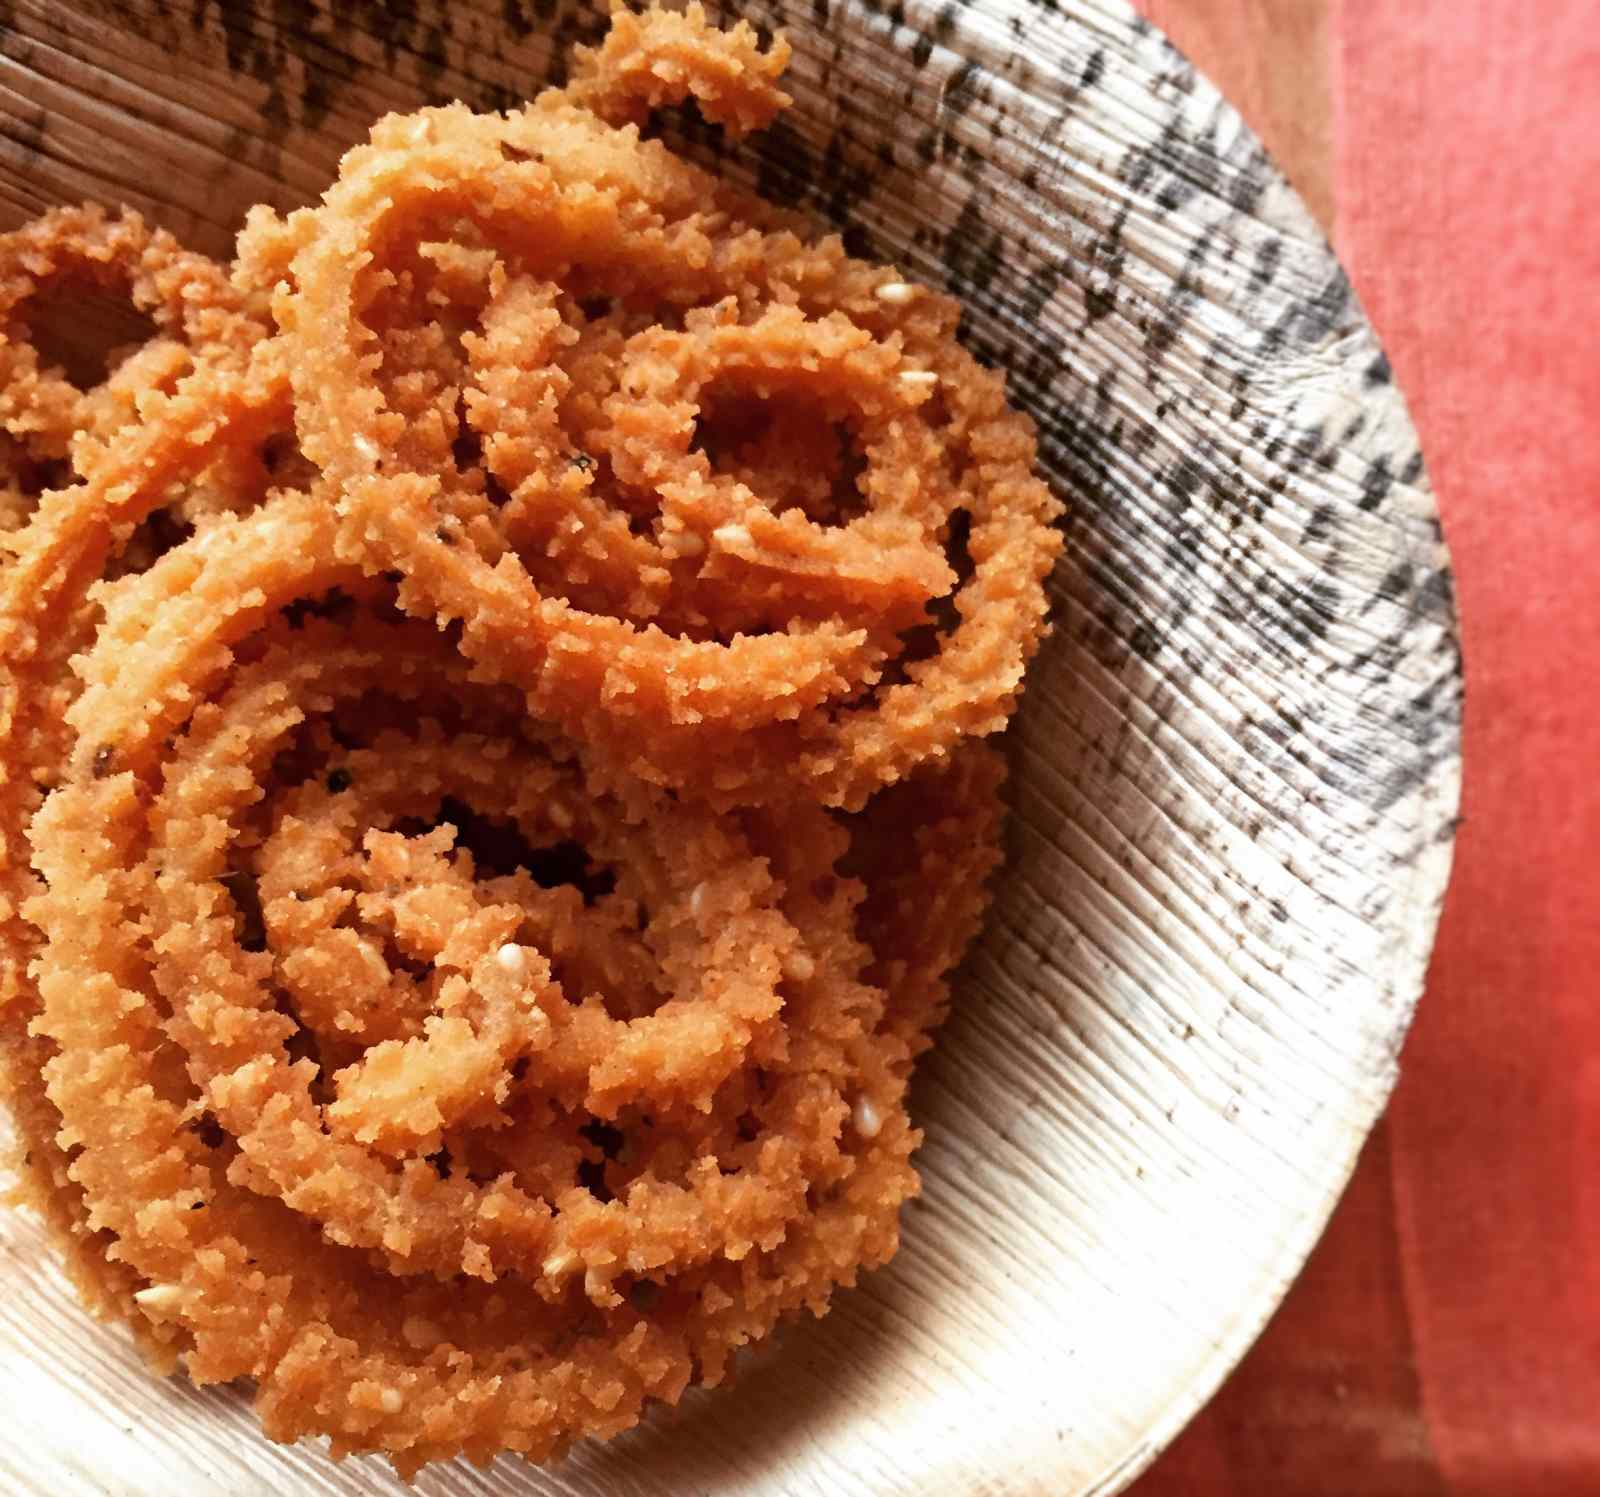 Pepper murukku recipe south indian style chakli by archanas kitchen pepper murukku recipe south indian style chakli forumfinder